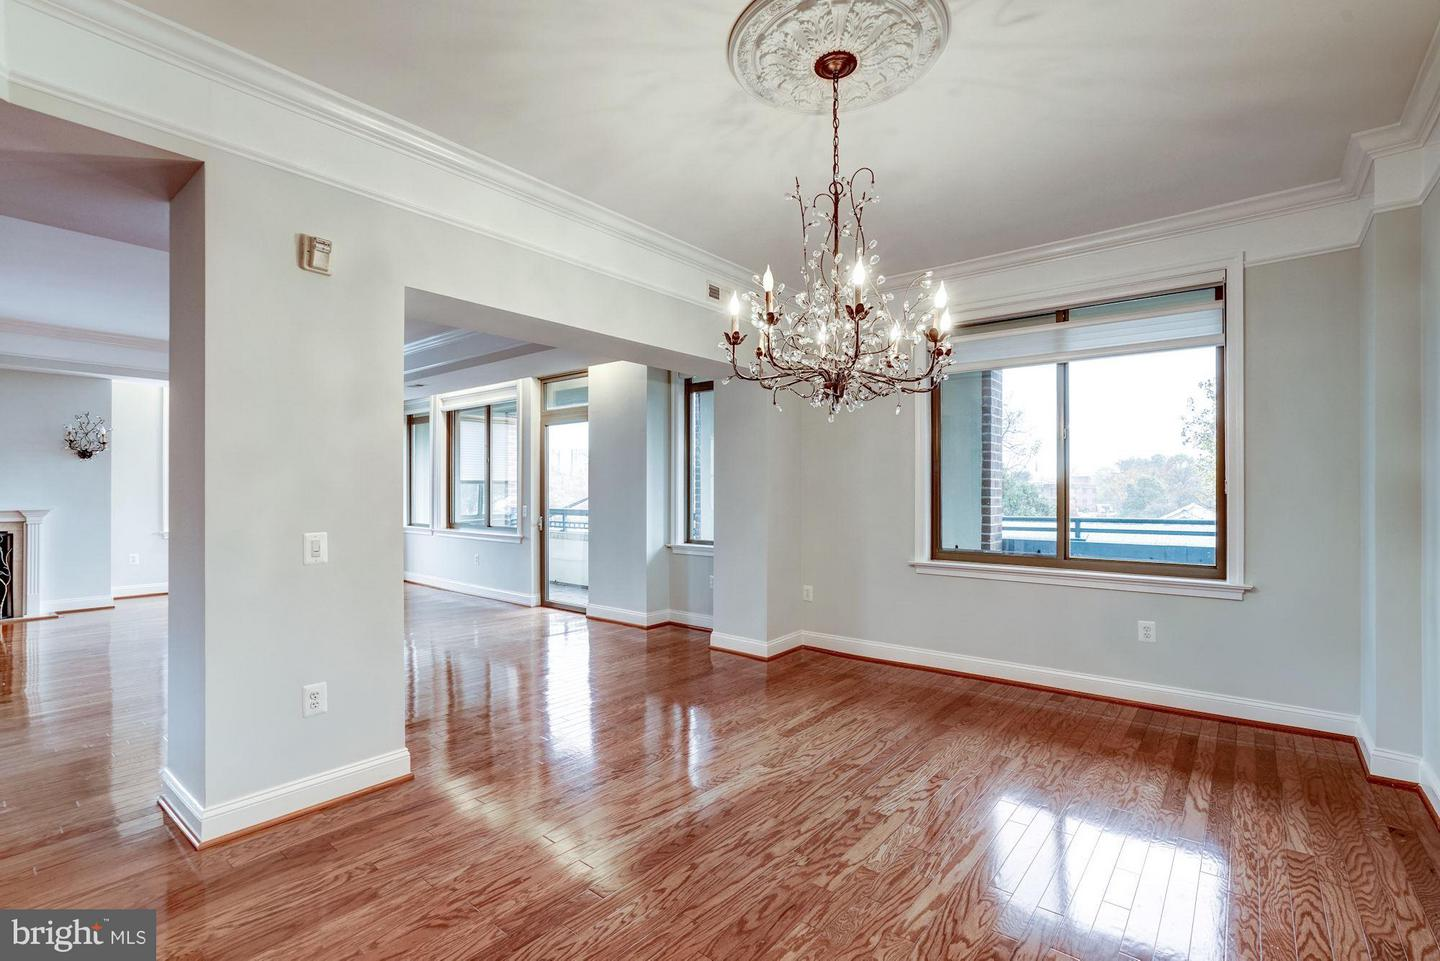 Additional photo for property listing at 1450 Emerson Ave #314 1450 Emerson Ave #314 McLean, Virginia 22101 United States